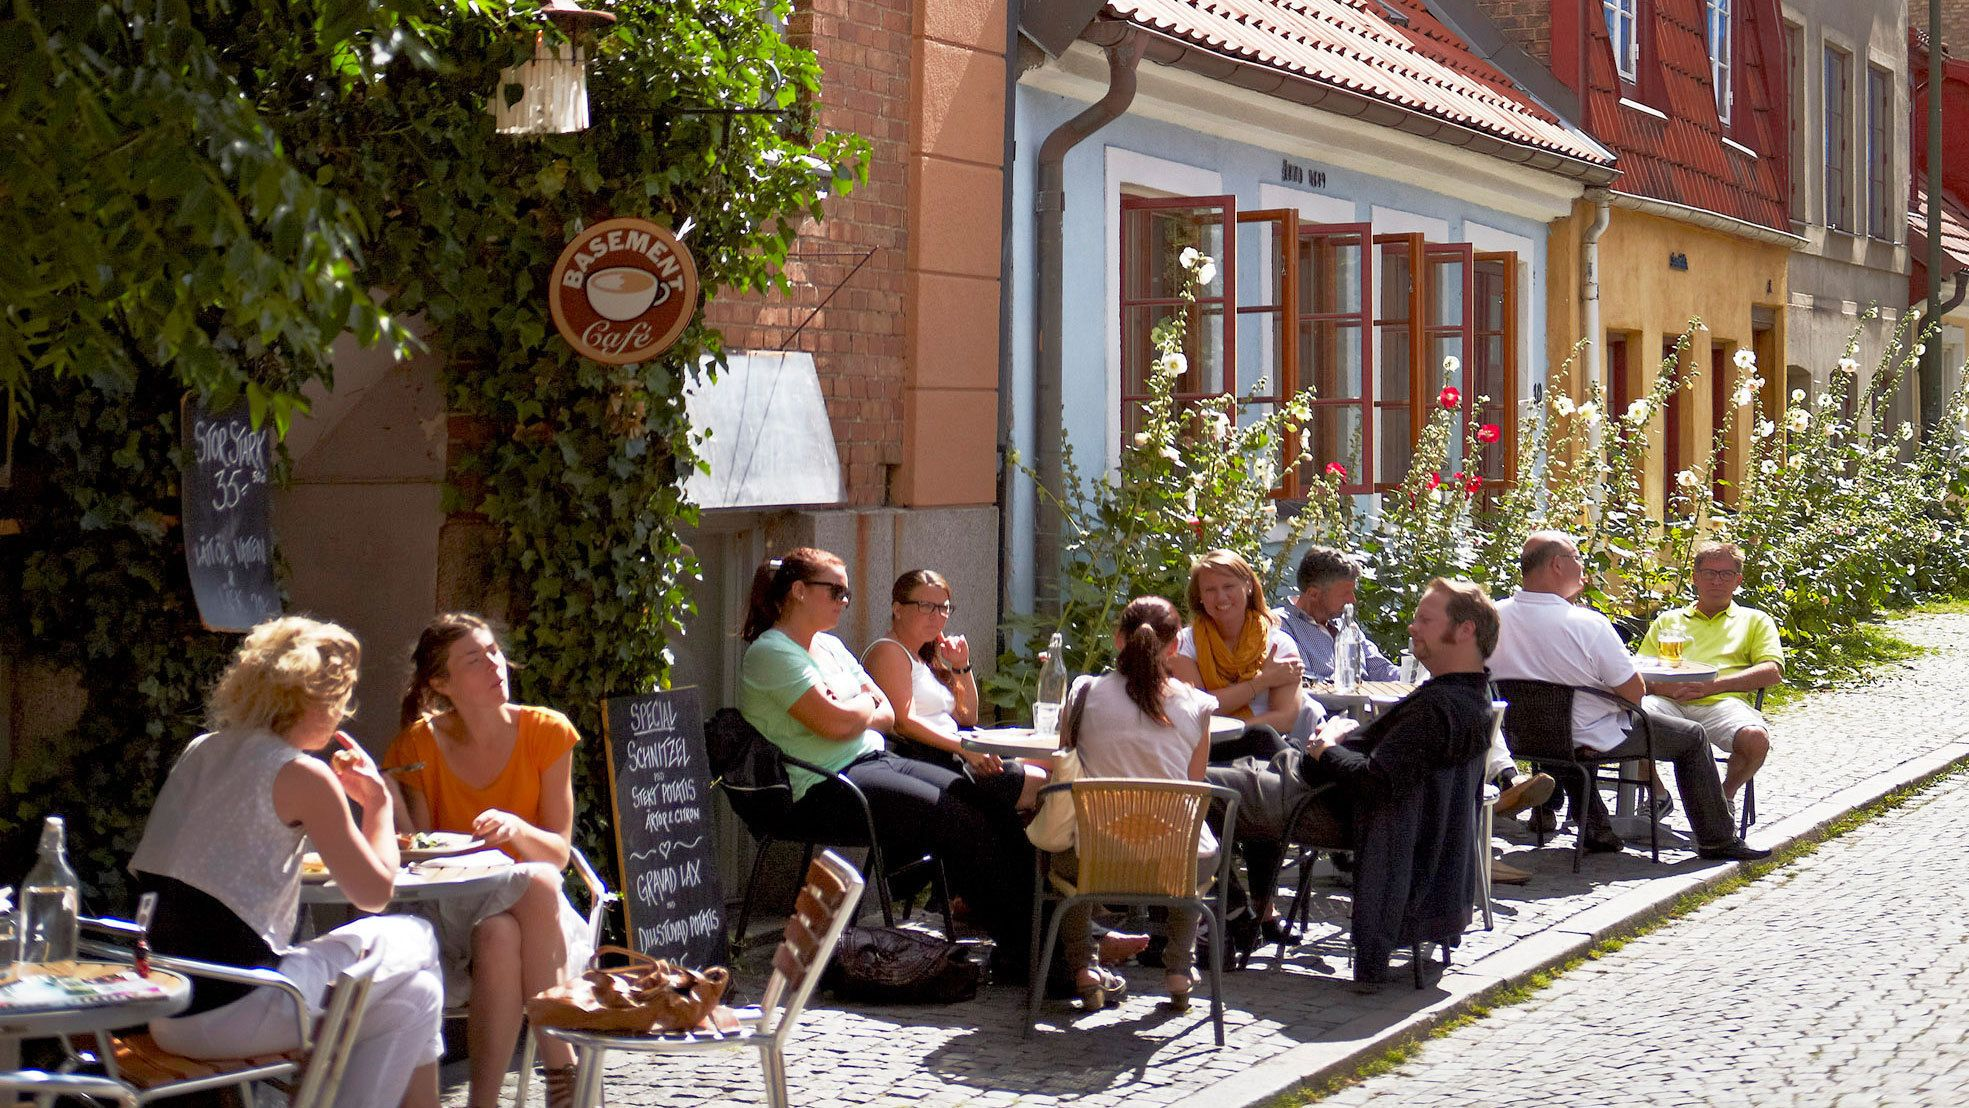 Enjoying lunch at the outdoor seatings in Copenhagen